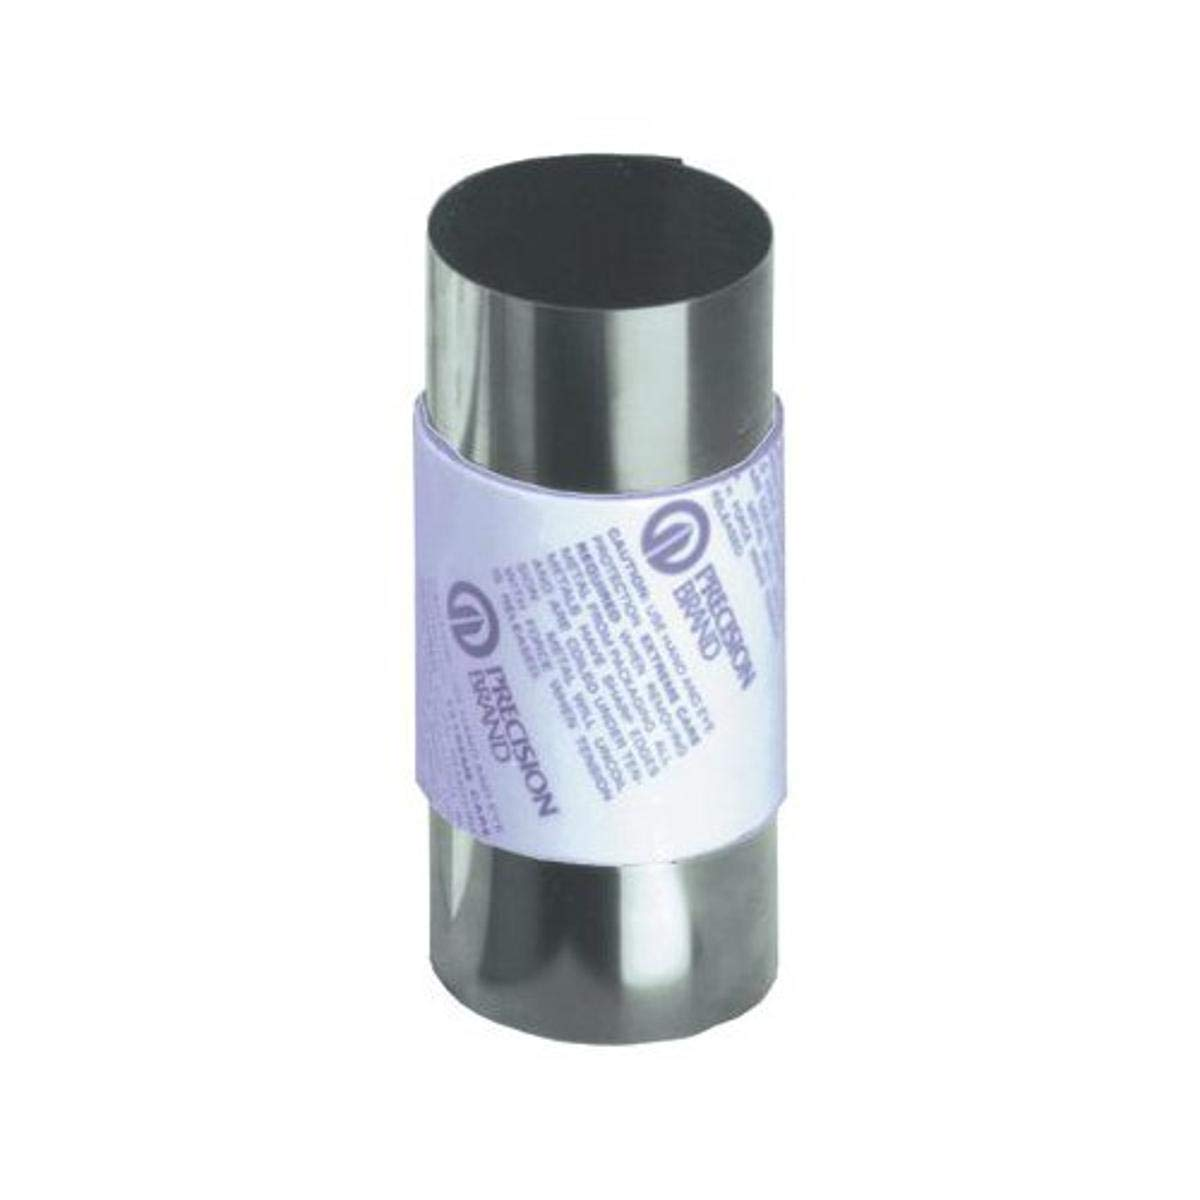 Precision Brand 039-22979 0.65 mm Steel Shim Stock 150 mm X 1.25M Roll, Full Hard, Cold Rolled, 302 Stainless Steel